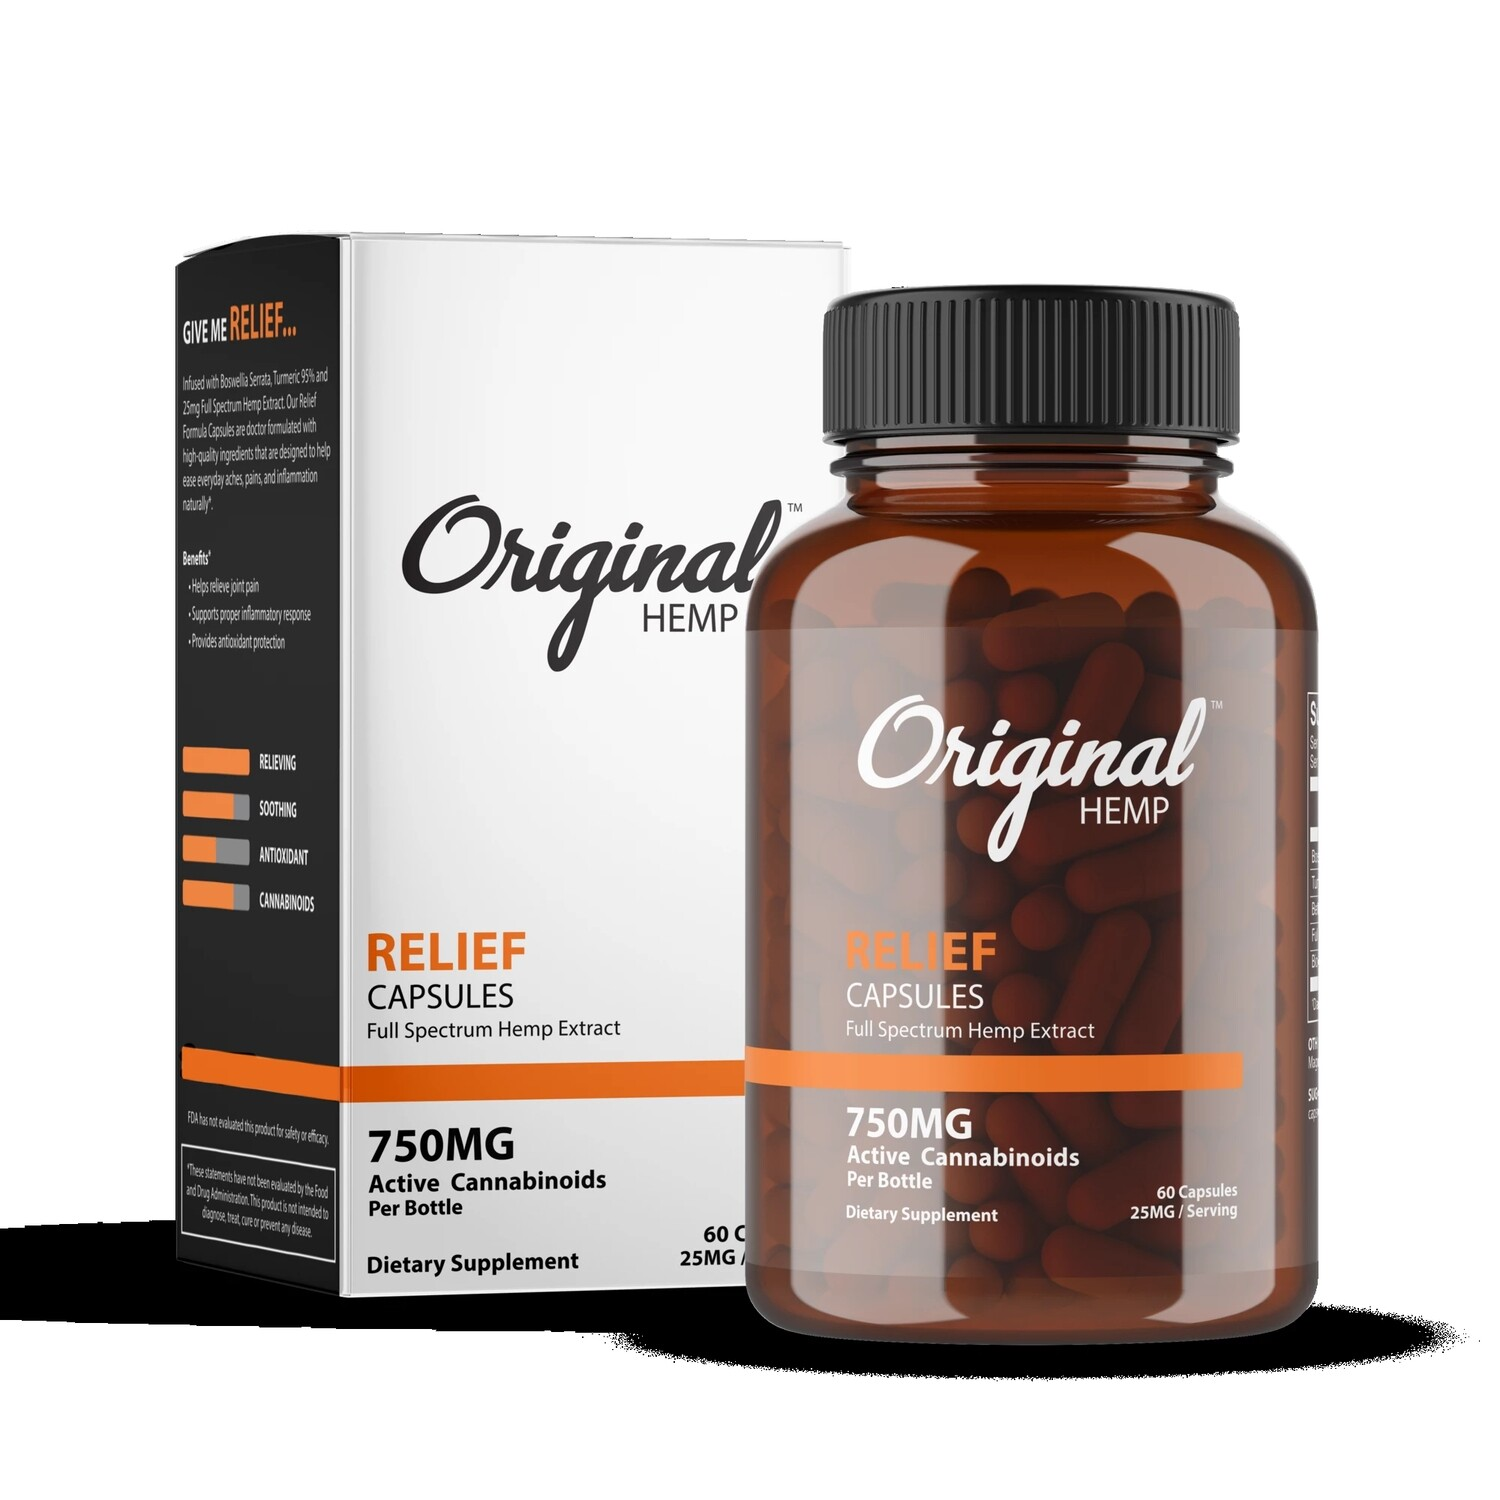 Original Hemp Relief Capsules 750mg 60ct